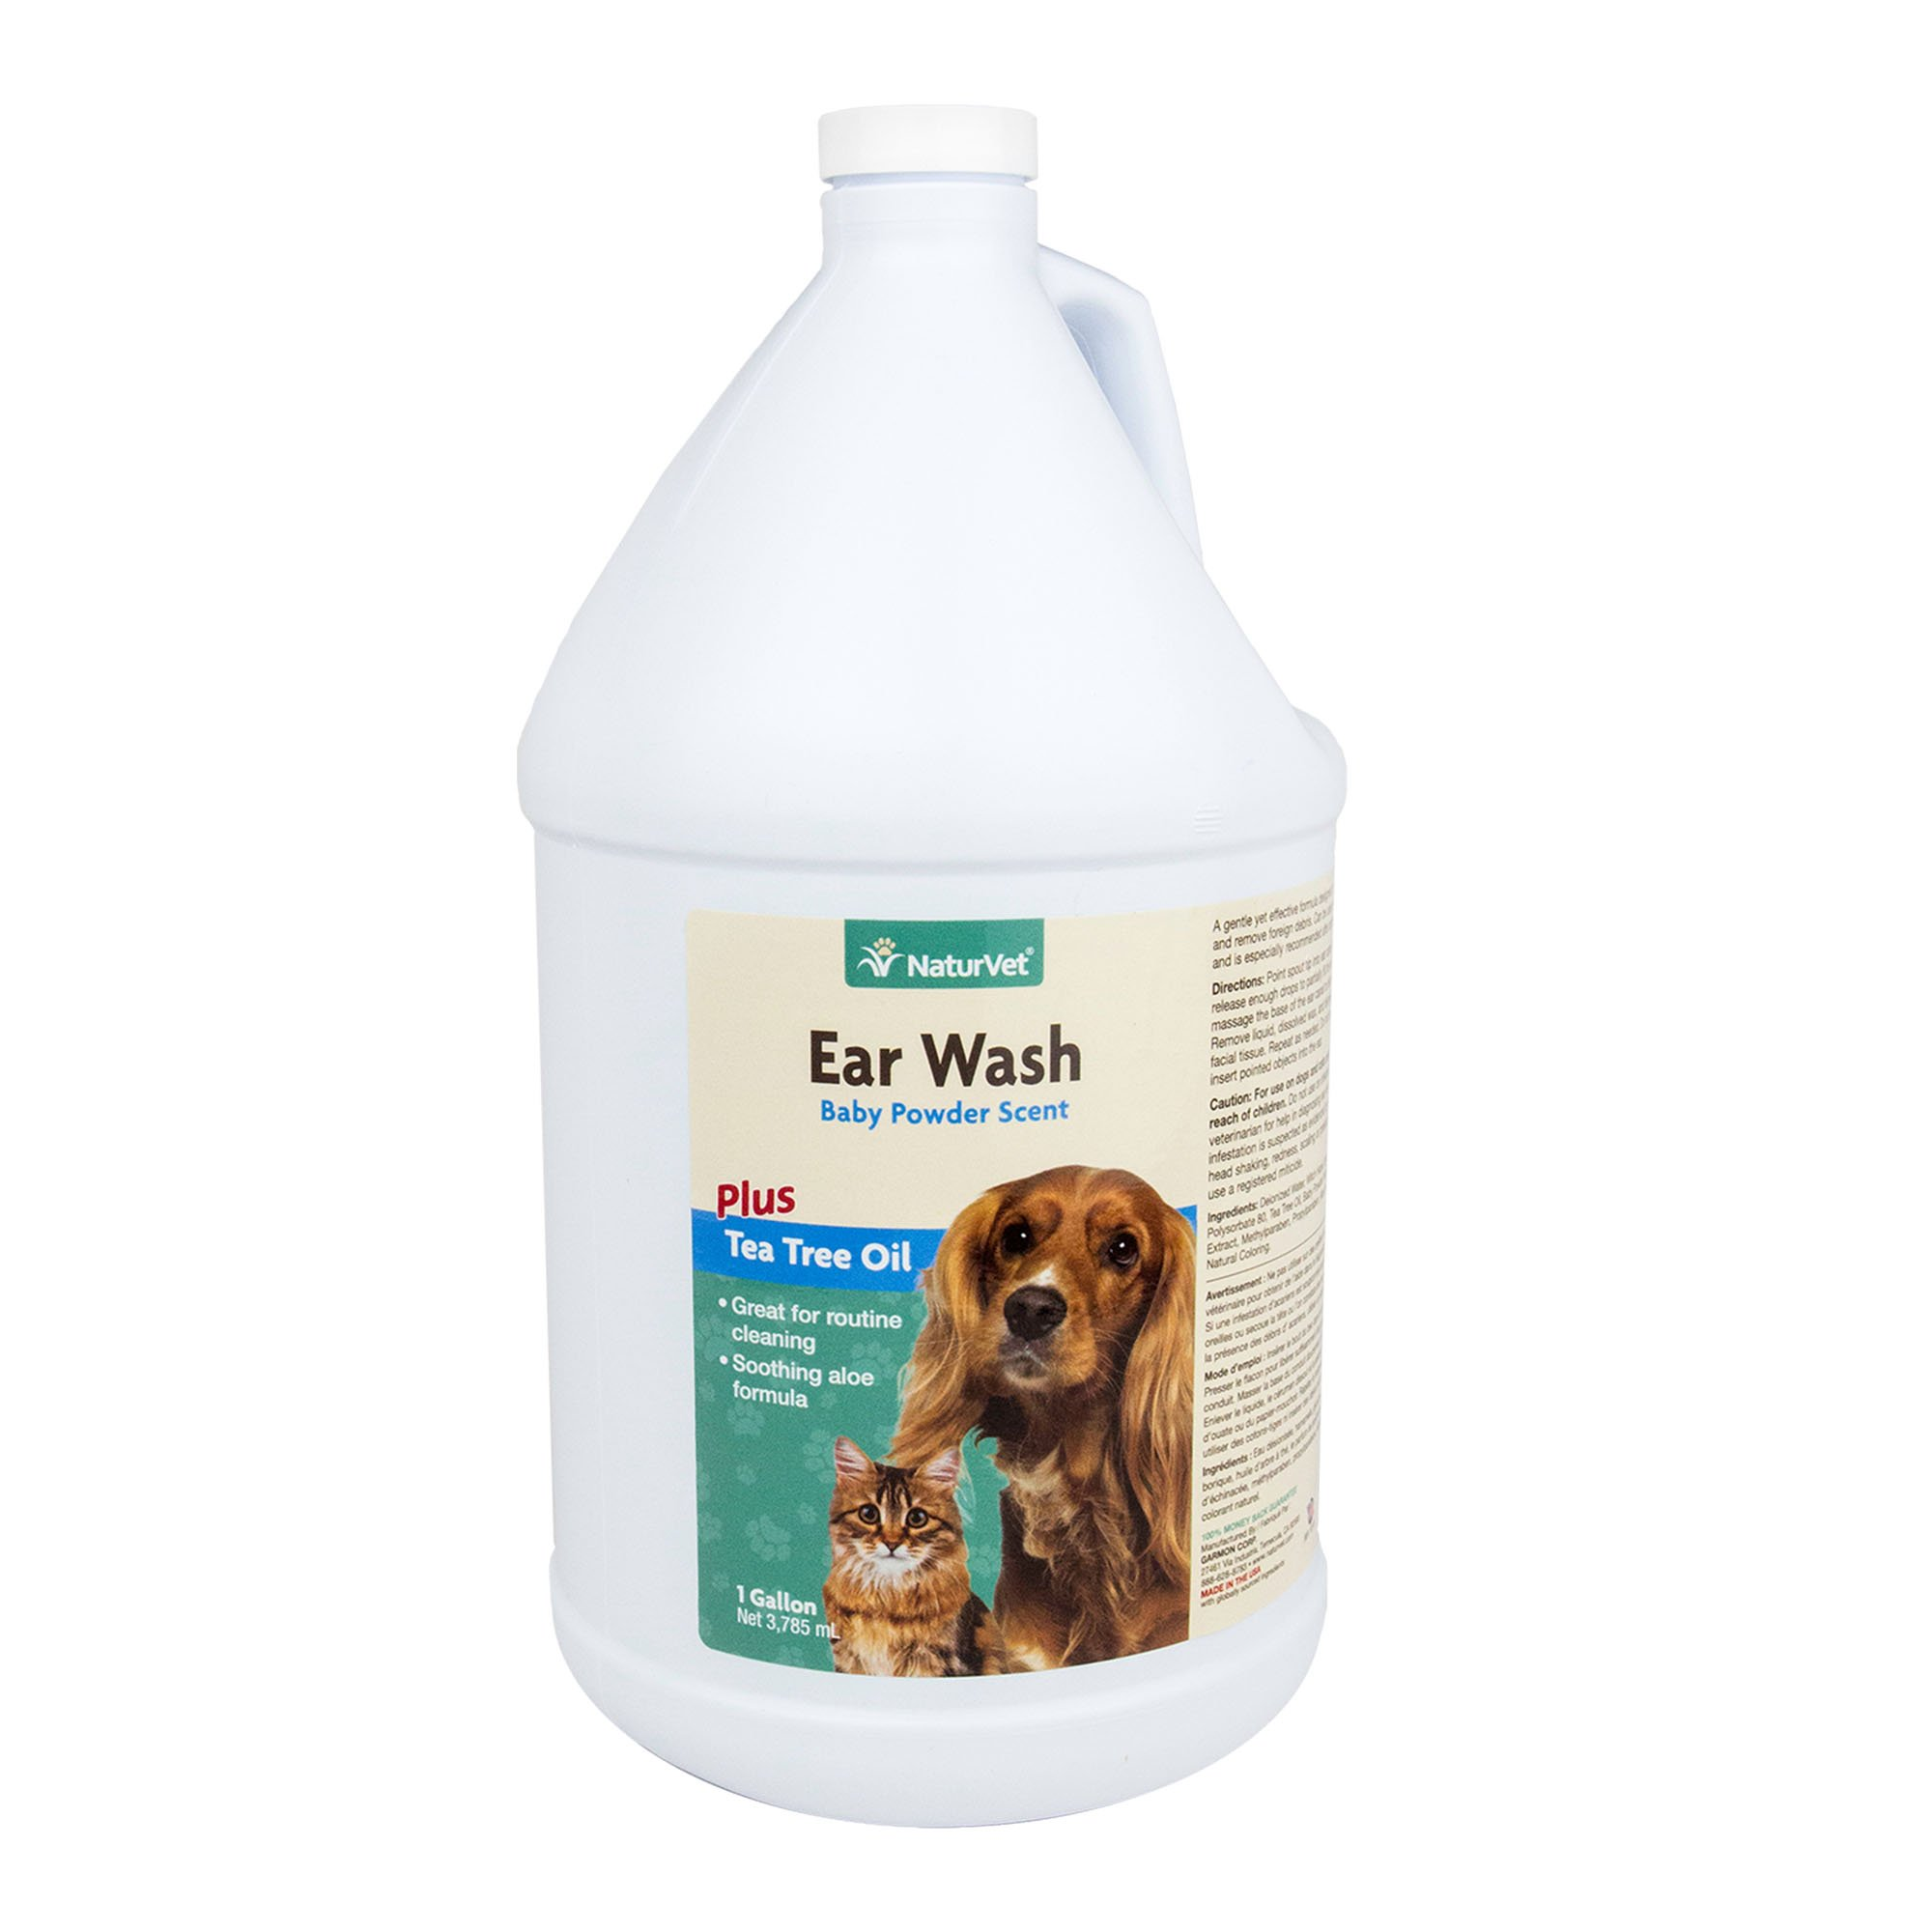 NaturVet Ear Wash Plus Tea Tree Oil for Dogs and Cats, 1 gal Liquid, Made in USA